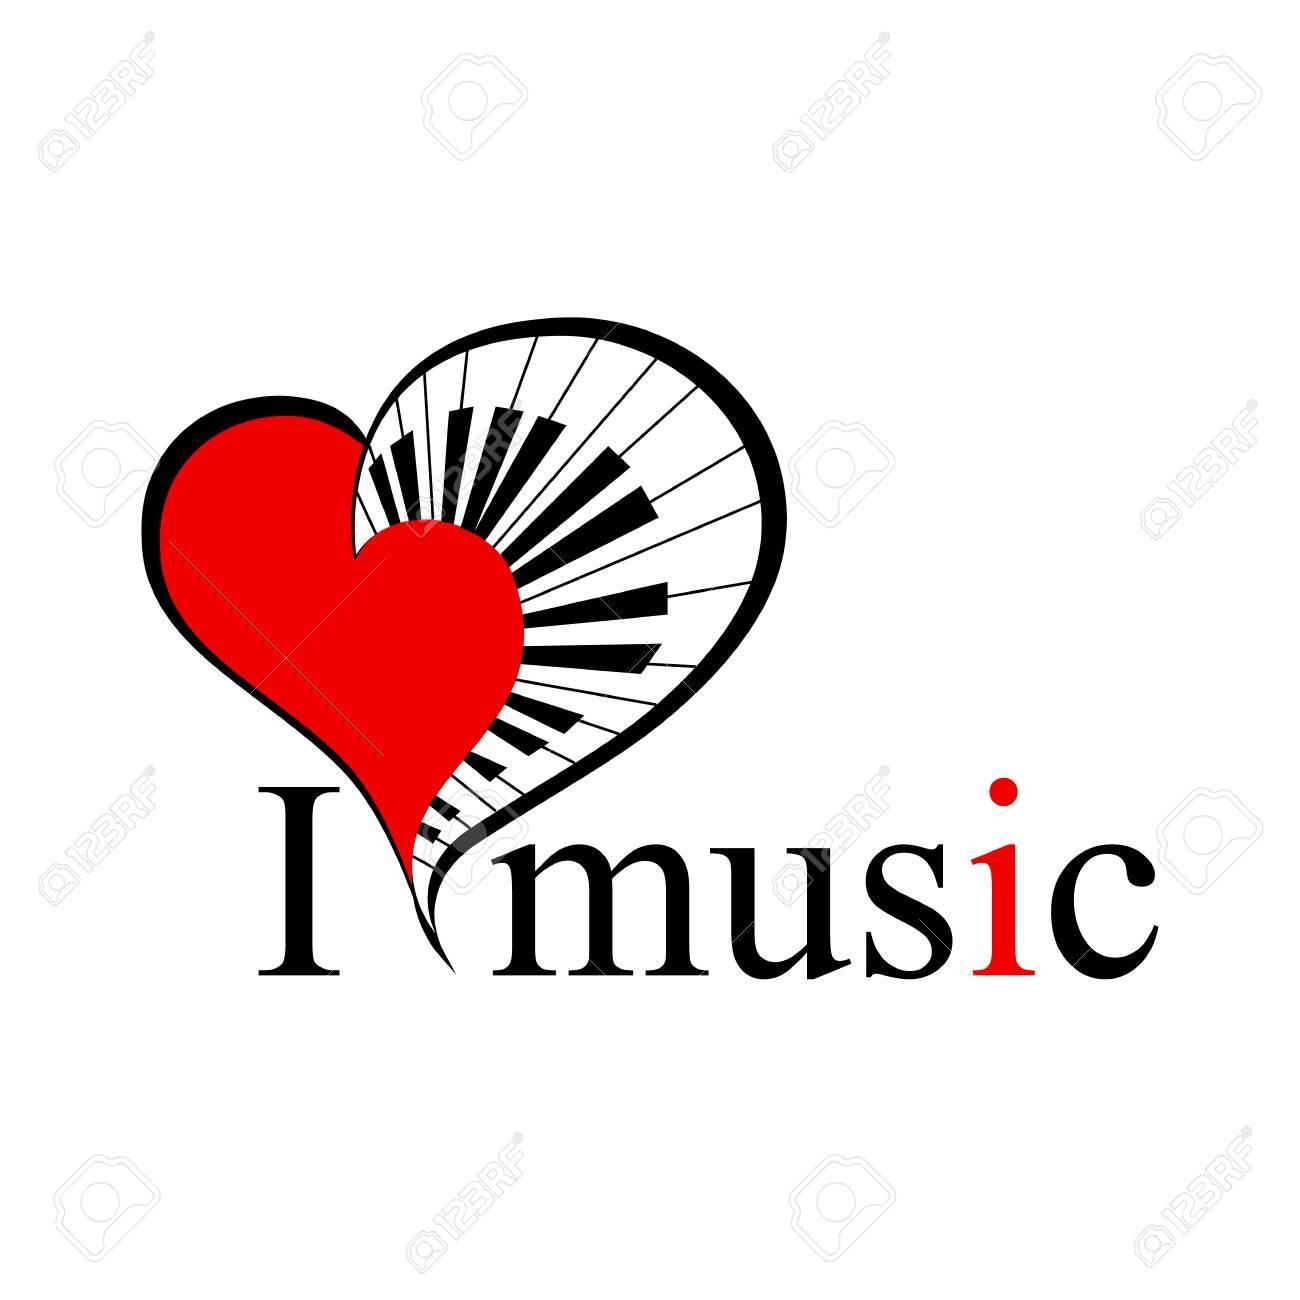 Big music heart with piano keys as a symbol love music and text big music heart with piano keys as a symbol love music and text stock vector buycottarizona Image collections